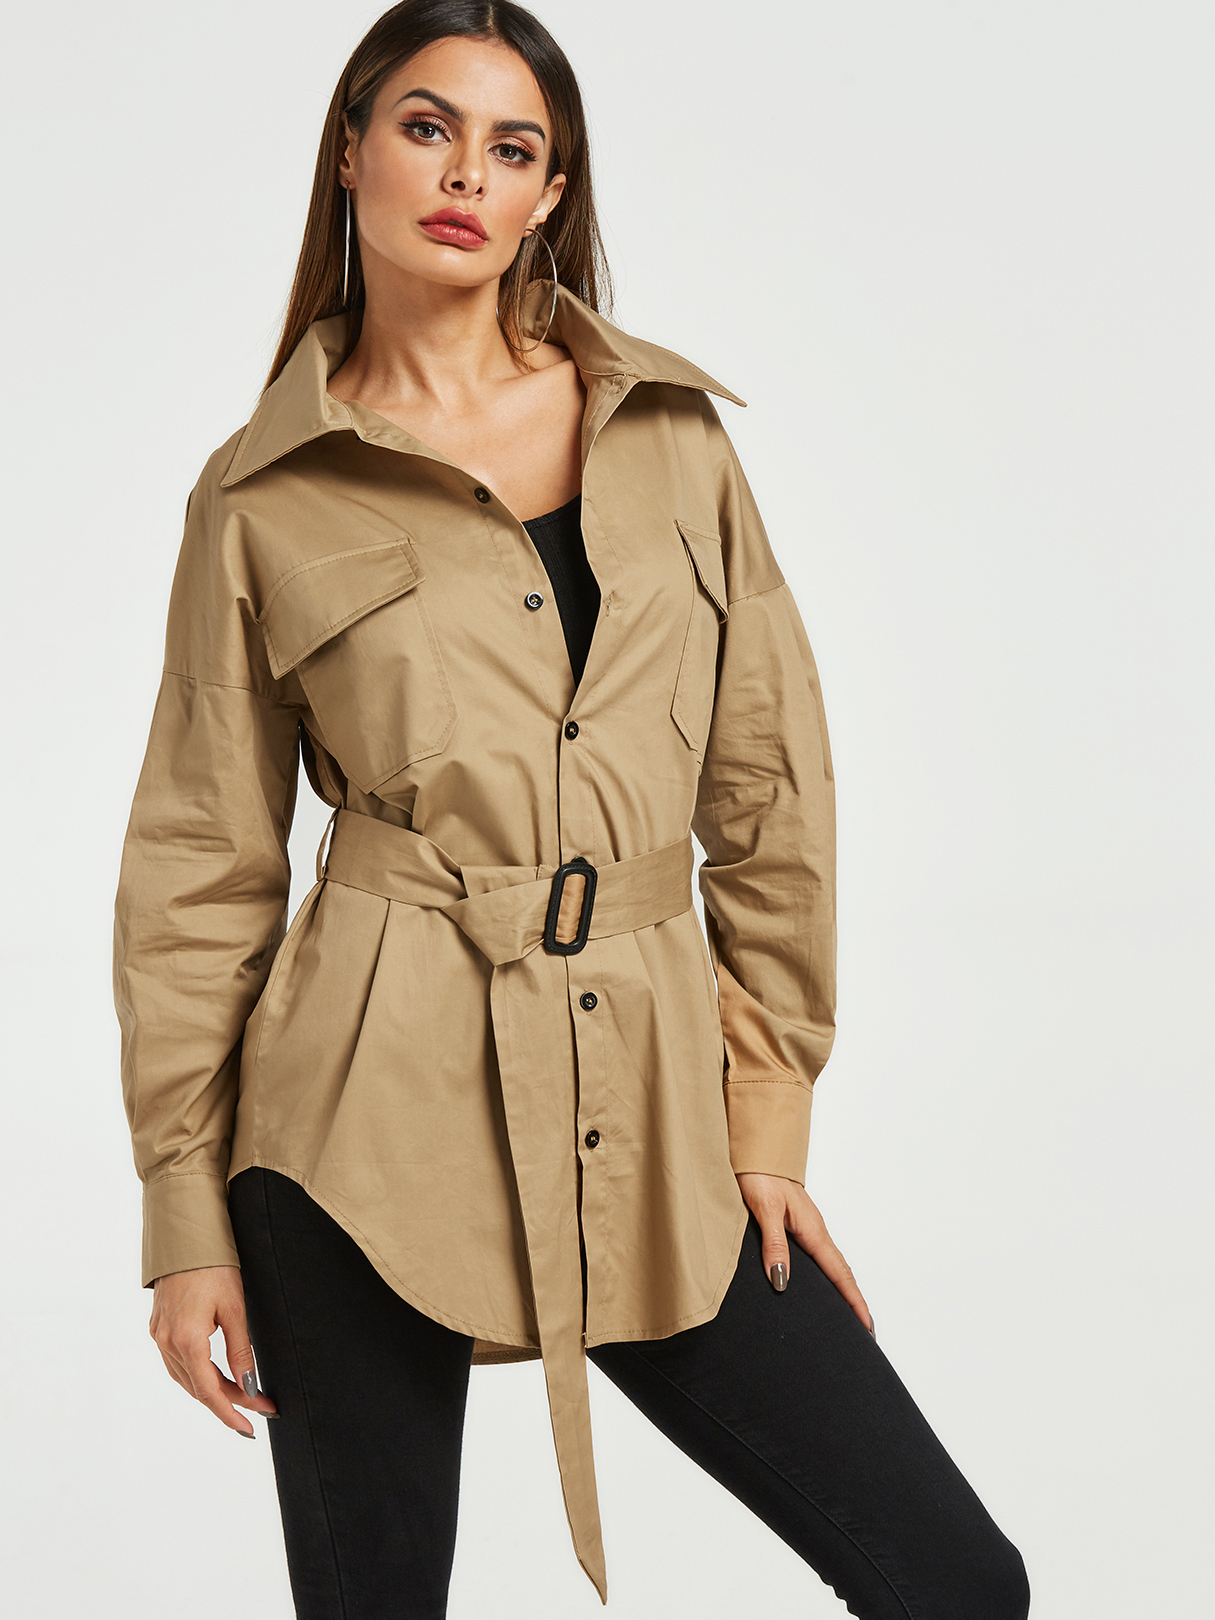 Khaki Pocket Design Lapel Collar Trench Coat